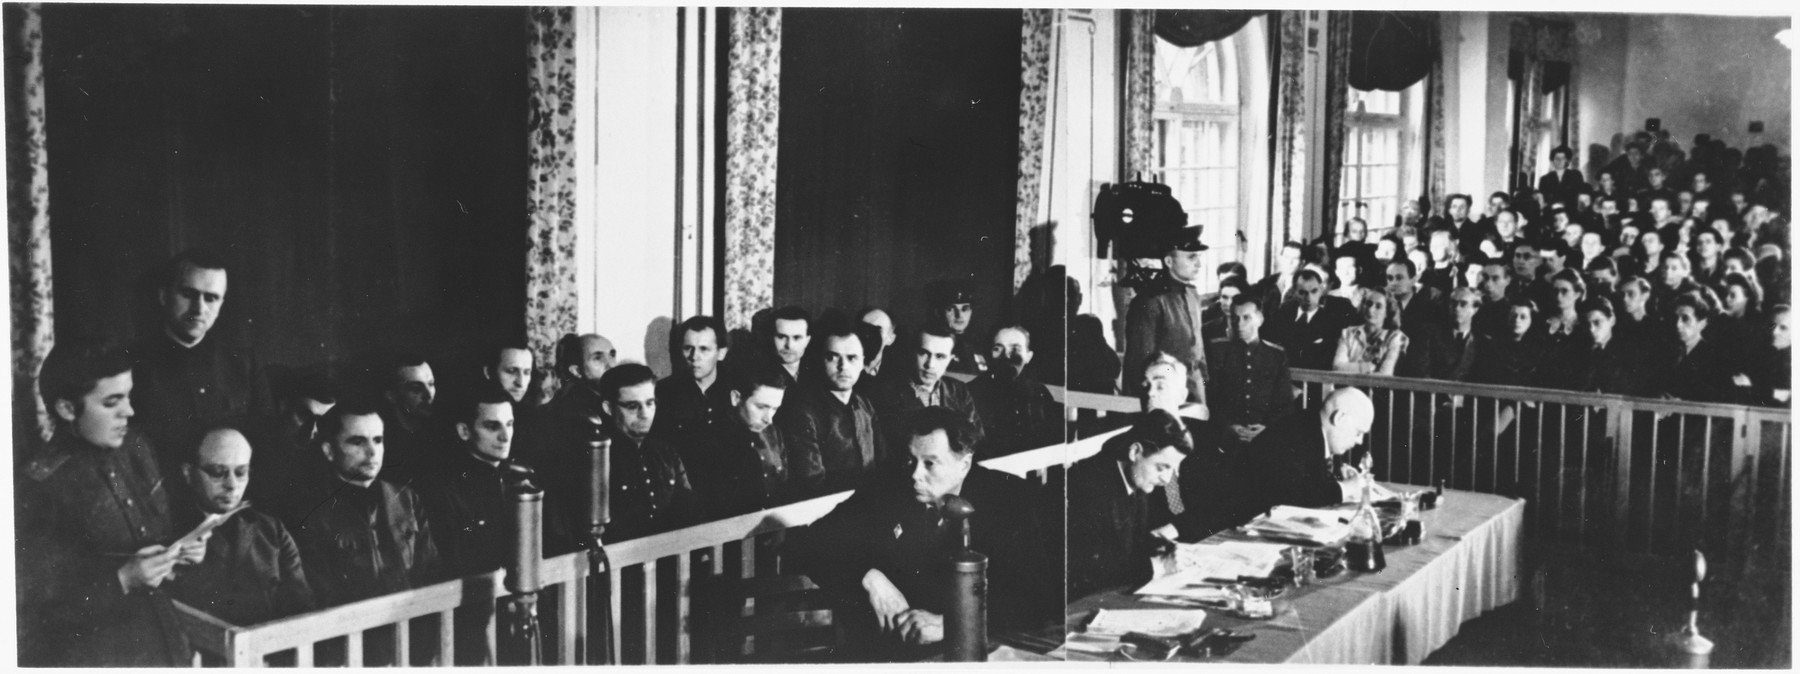 View of the courtroom at the Sachsenhausen concentration camp war crimes trial in Berlin.  The defendants are pictured at the left, their lawyers in the middle, and spectators at the right.